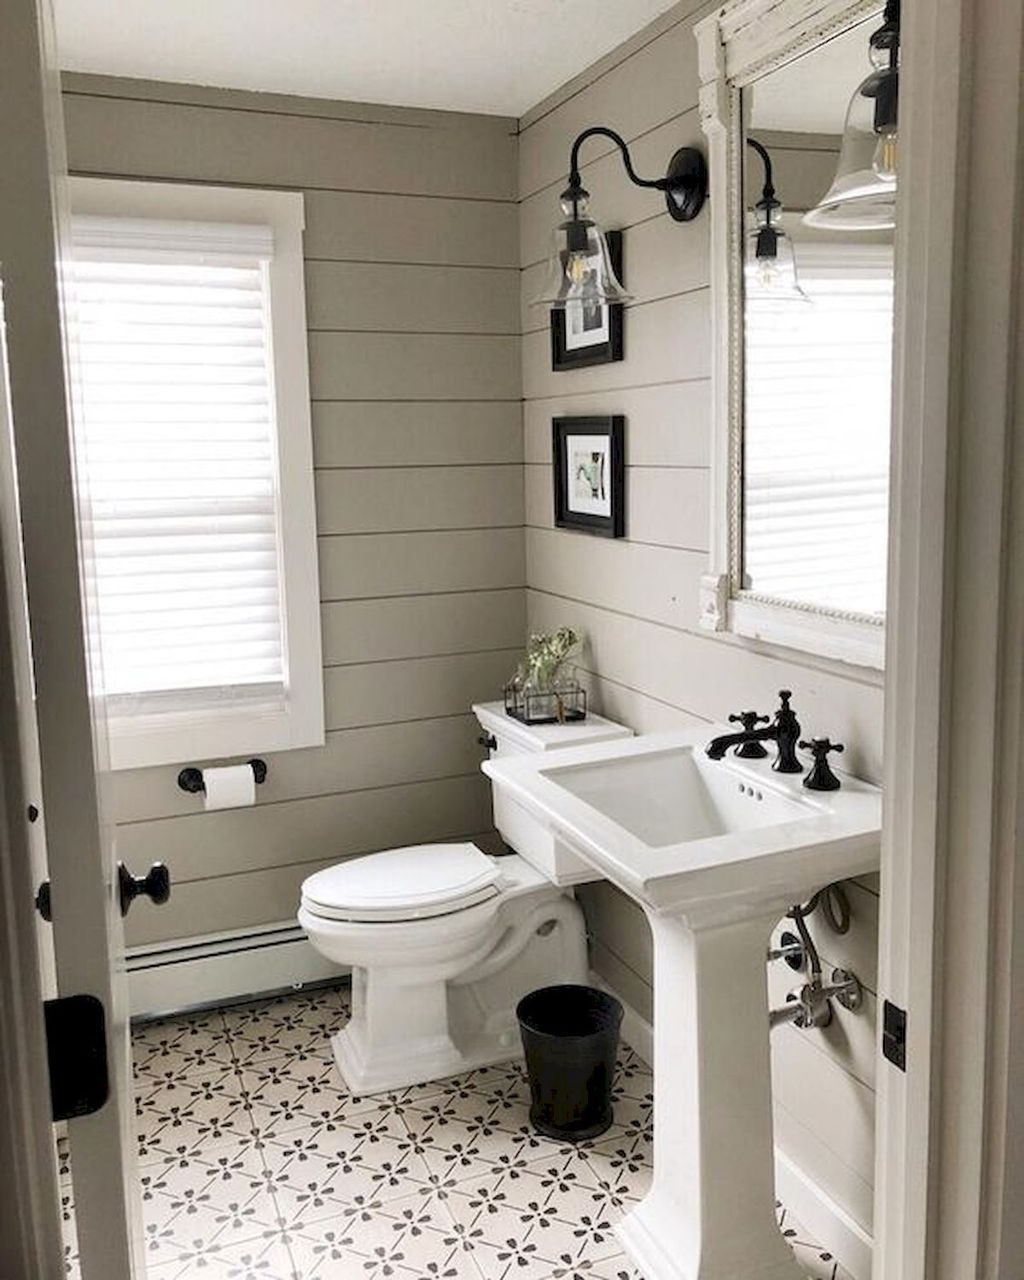 44 affordable farmhouse bathroom design ideas small on beautiful farmhouse bathroom shower decor ideas and remodel an extraordinary design id=63595